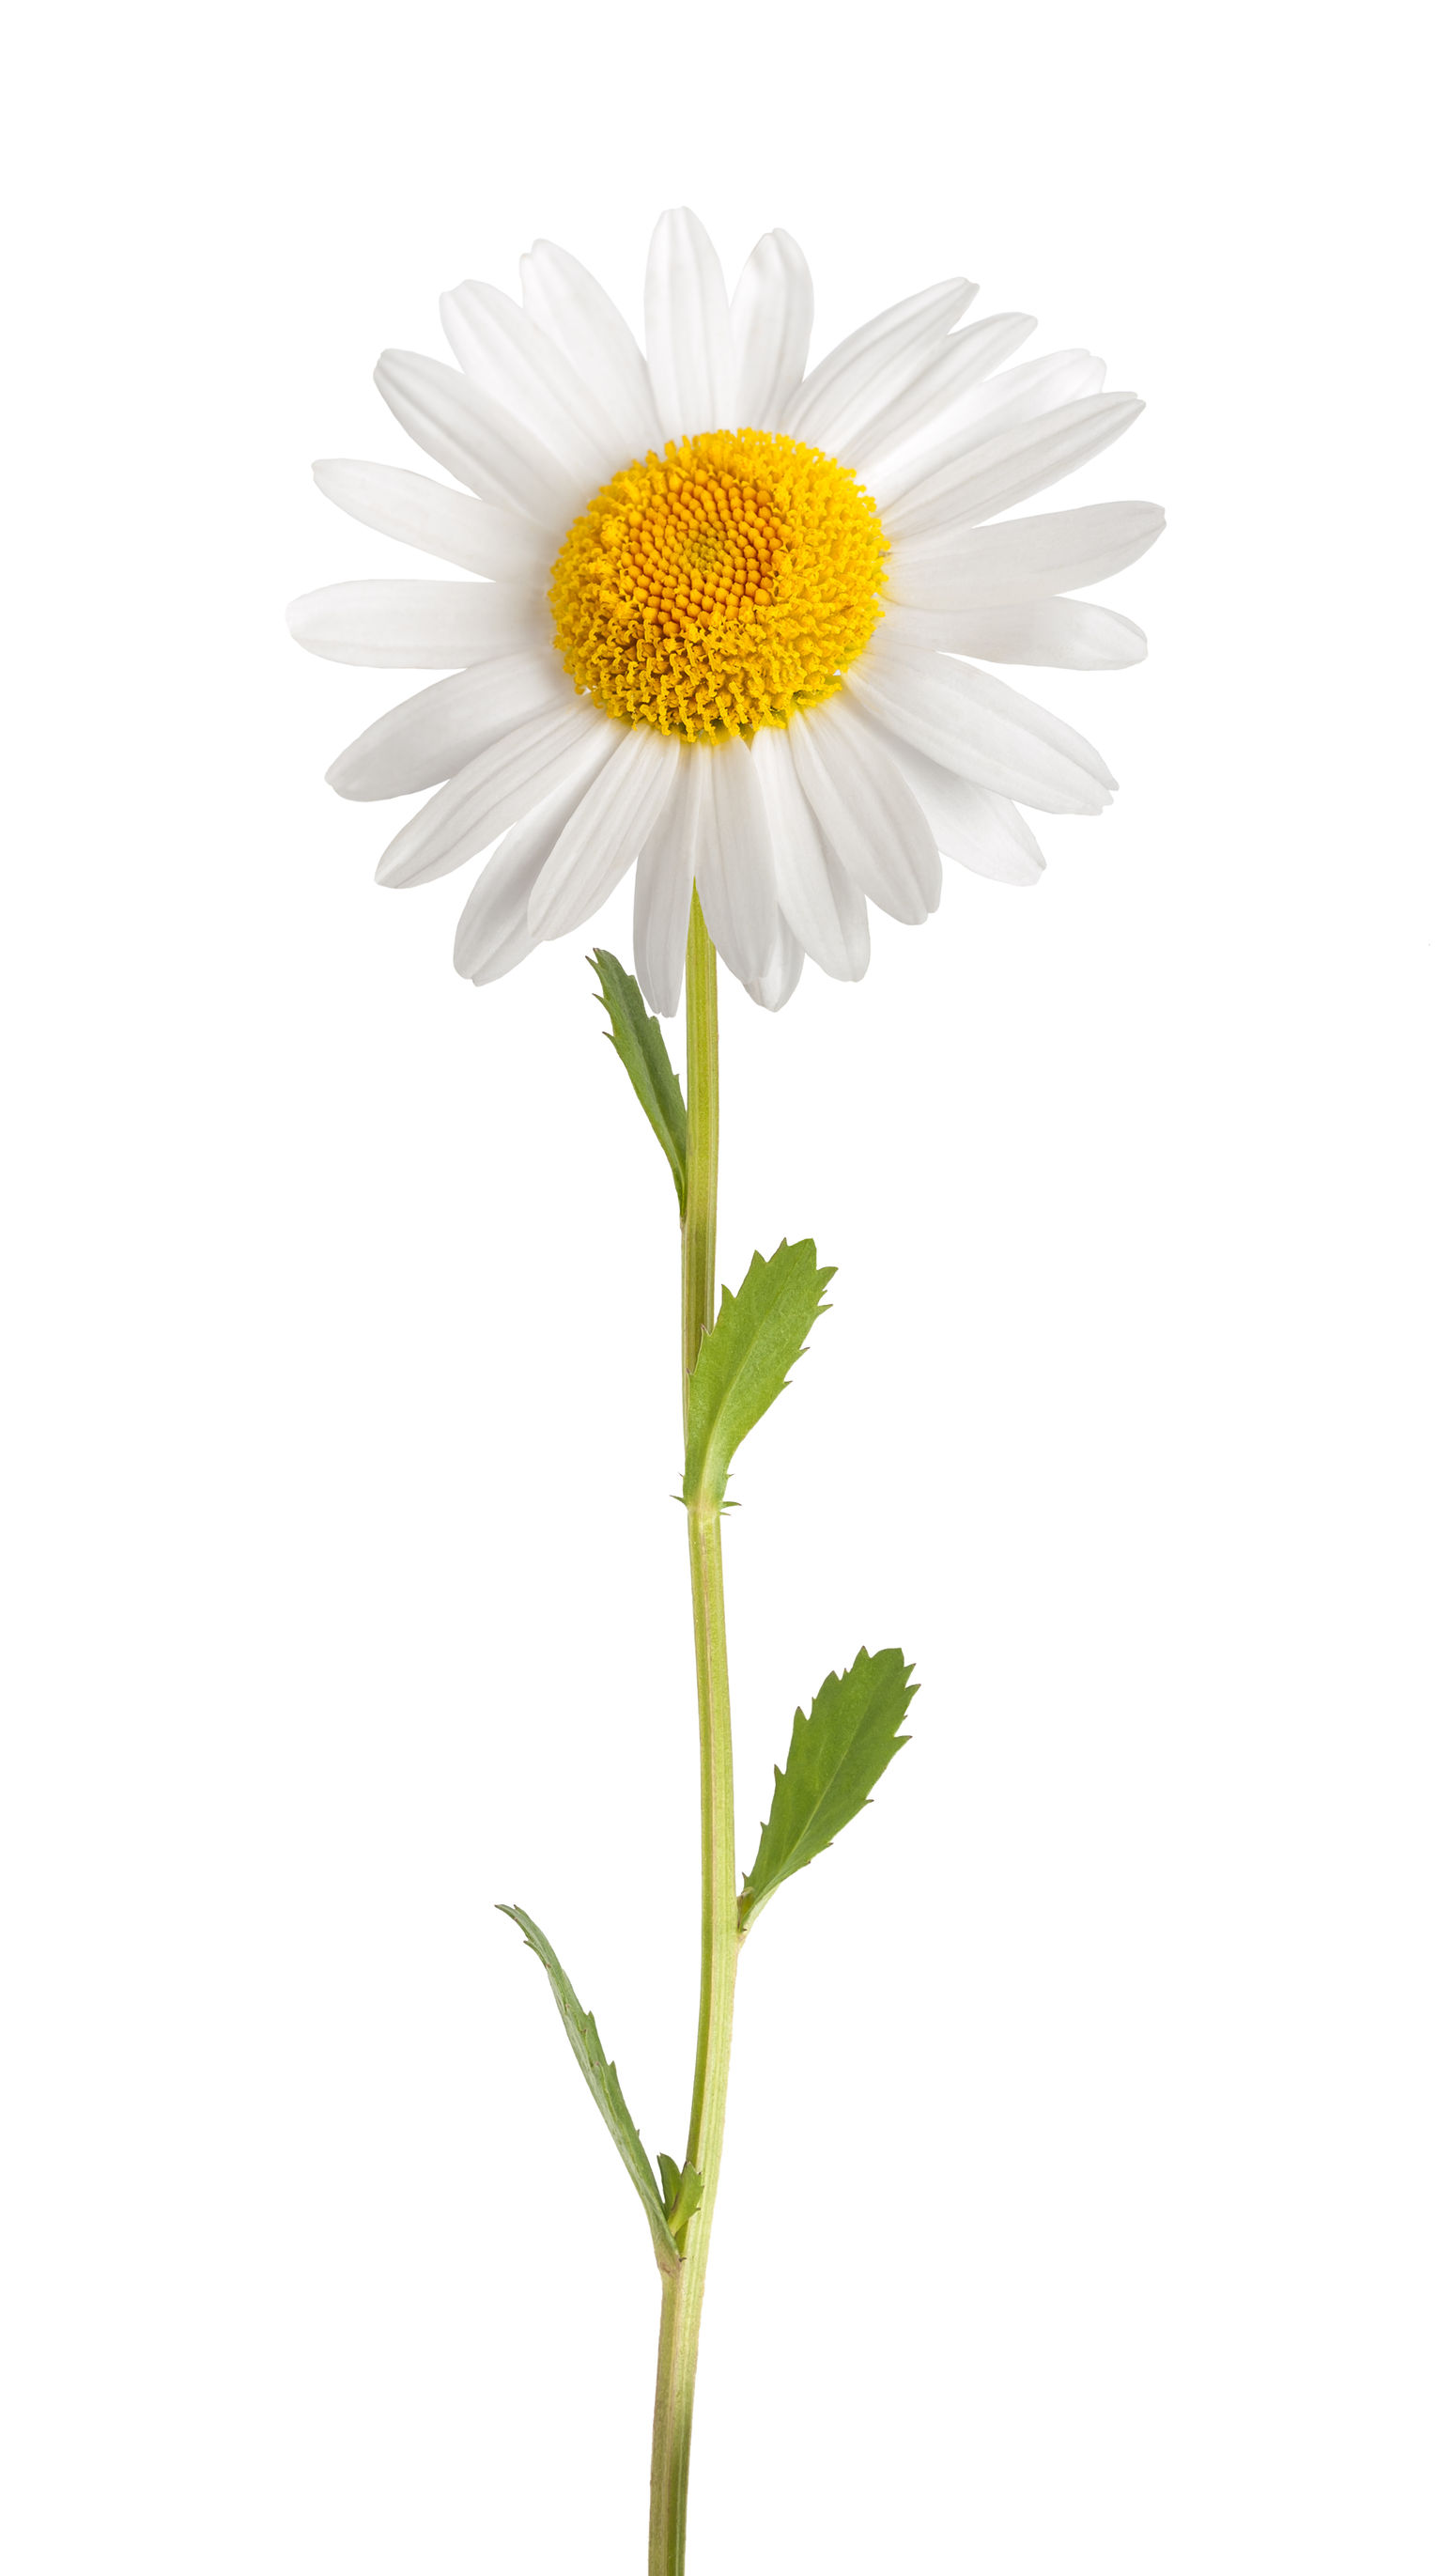 The Power of Daisy Flower Extract